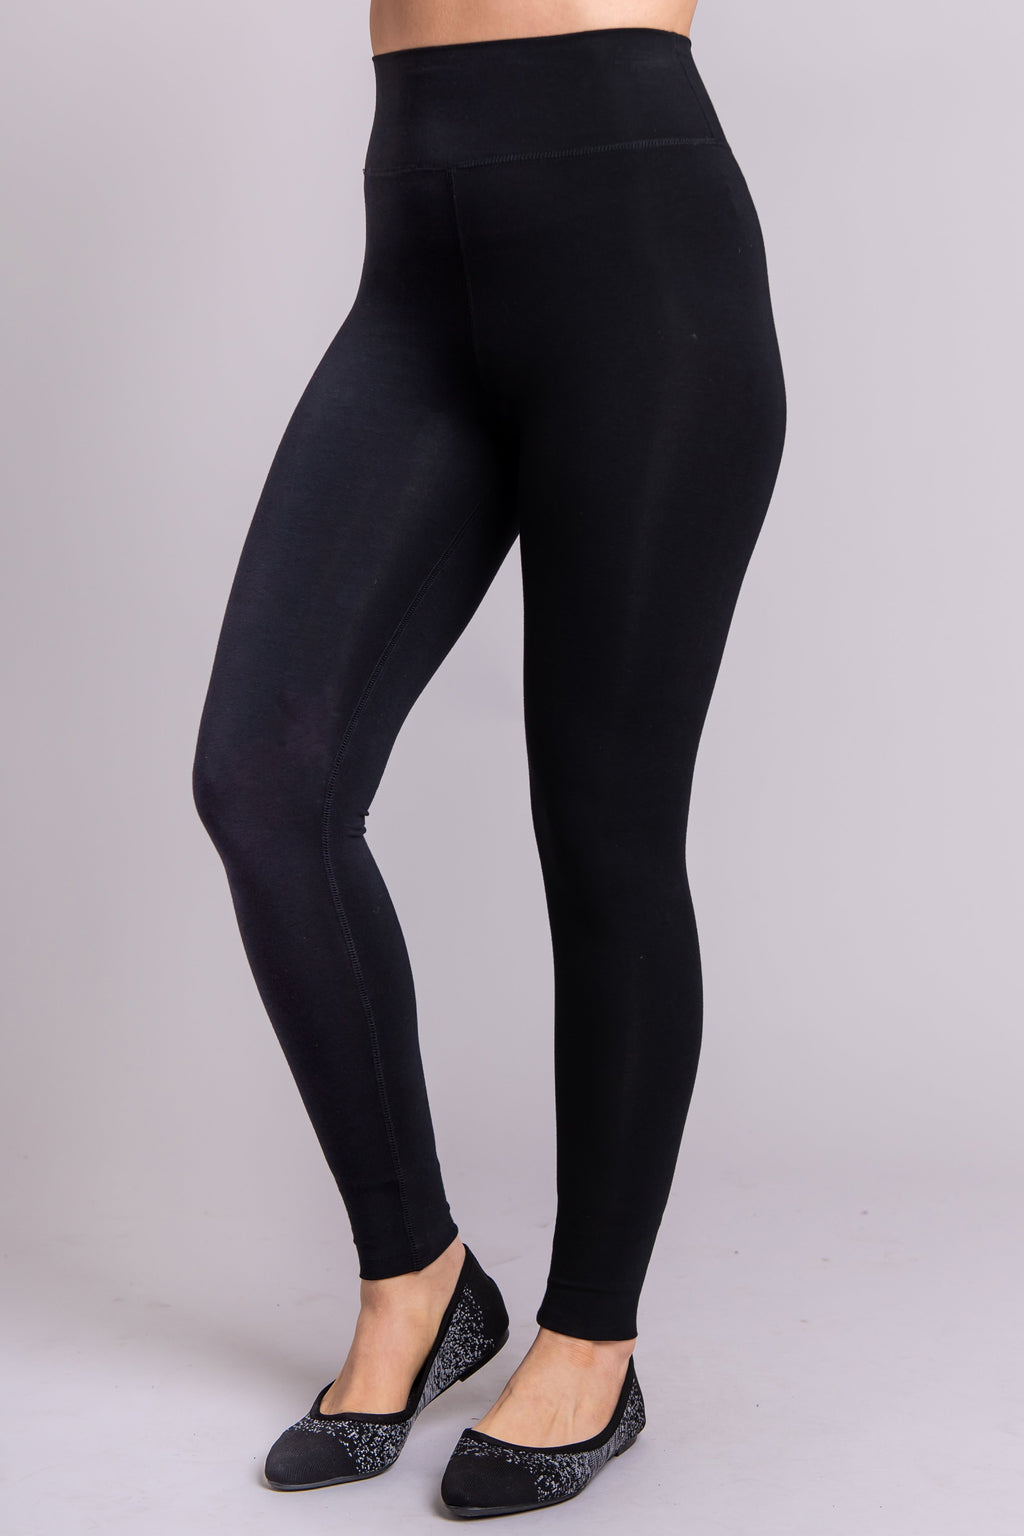 Women's basic petite black high-waisted legging for casual or workout wear.